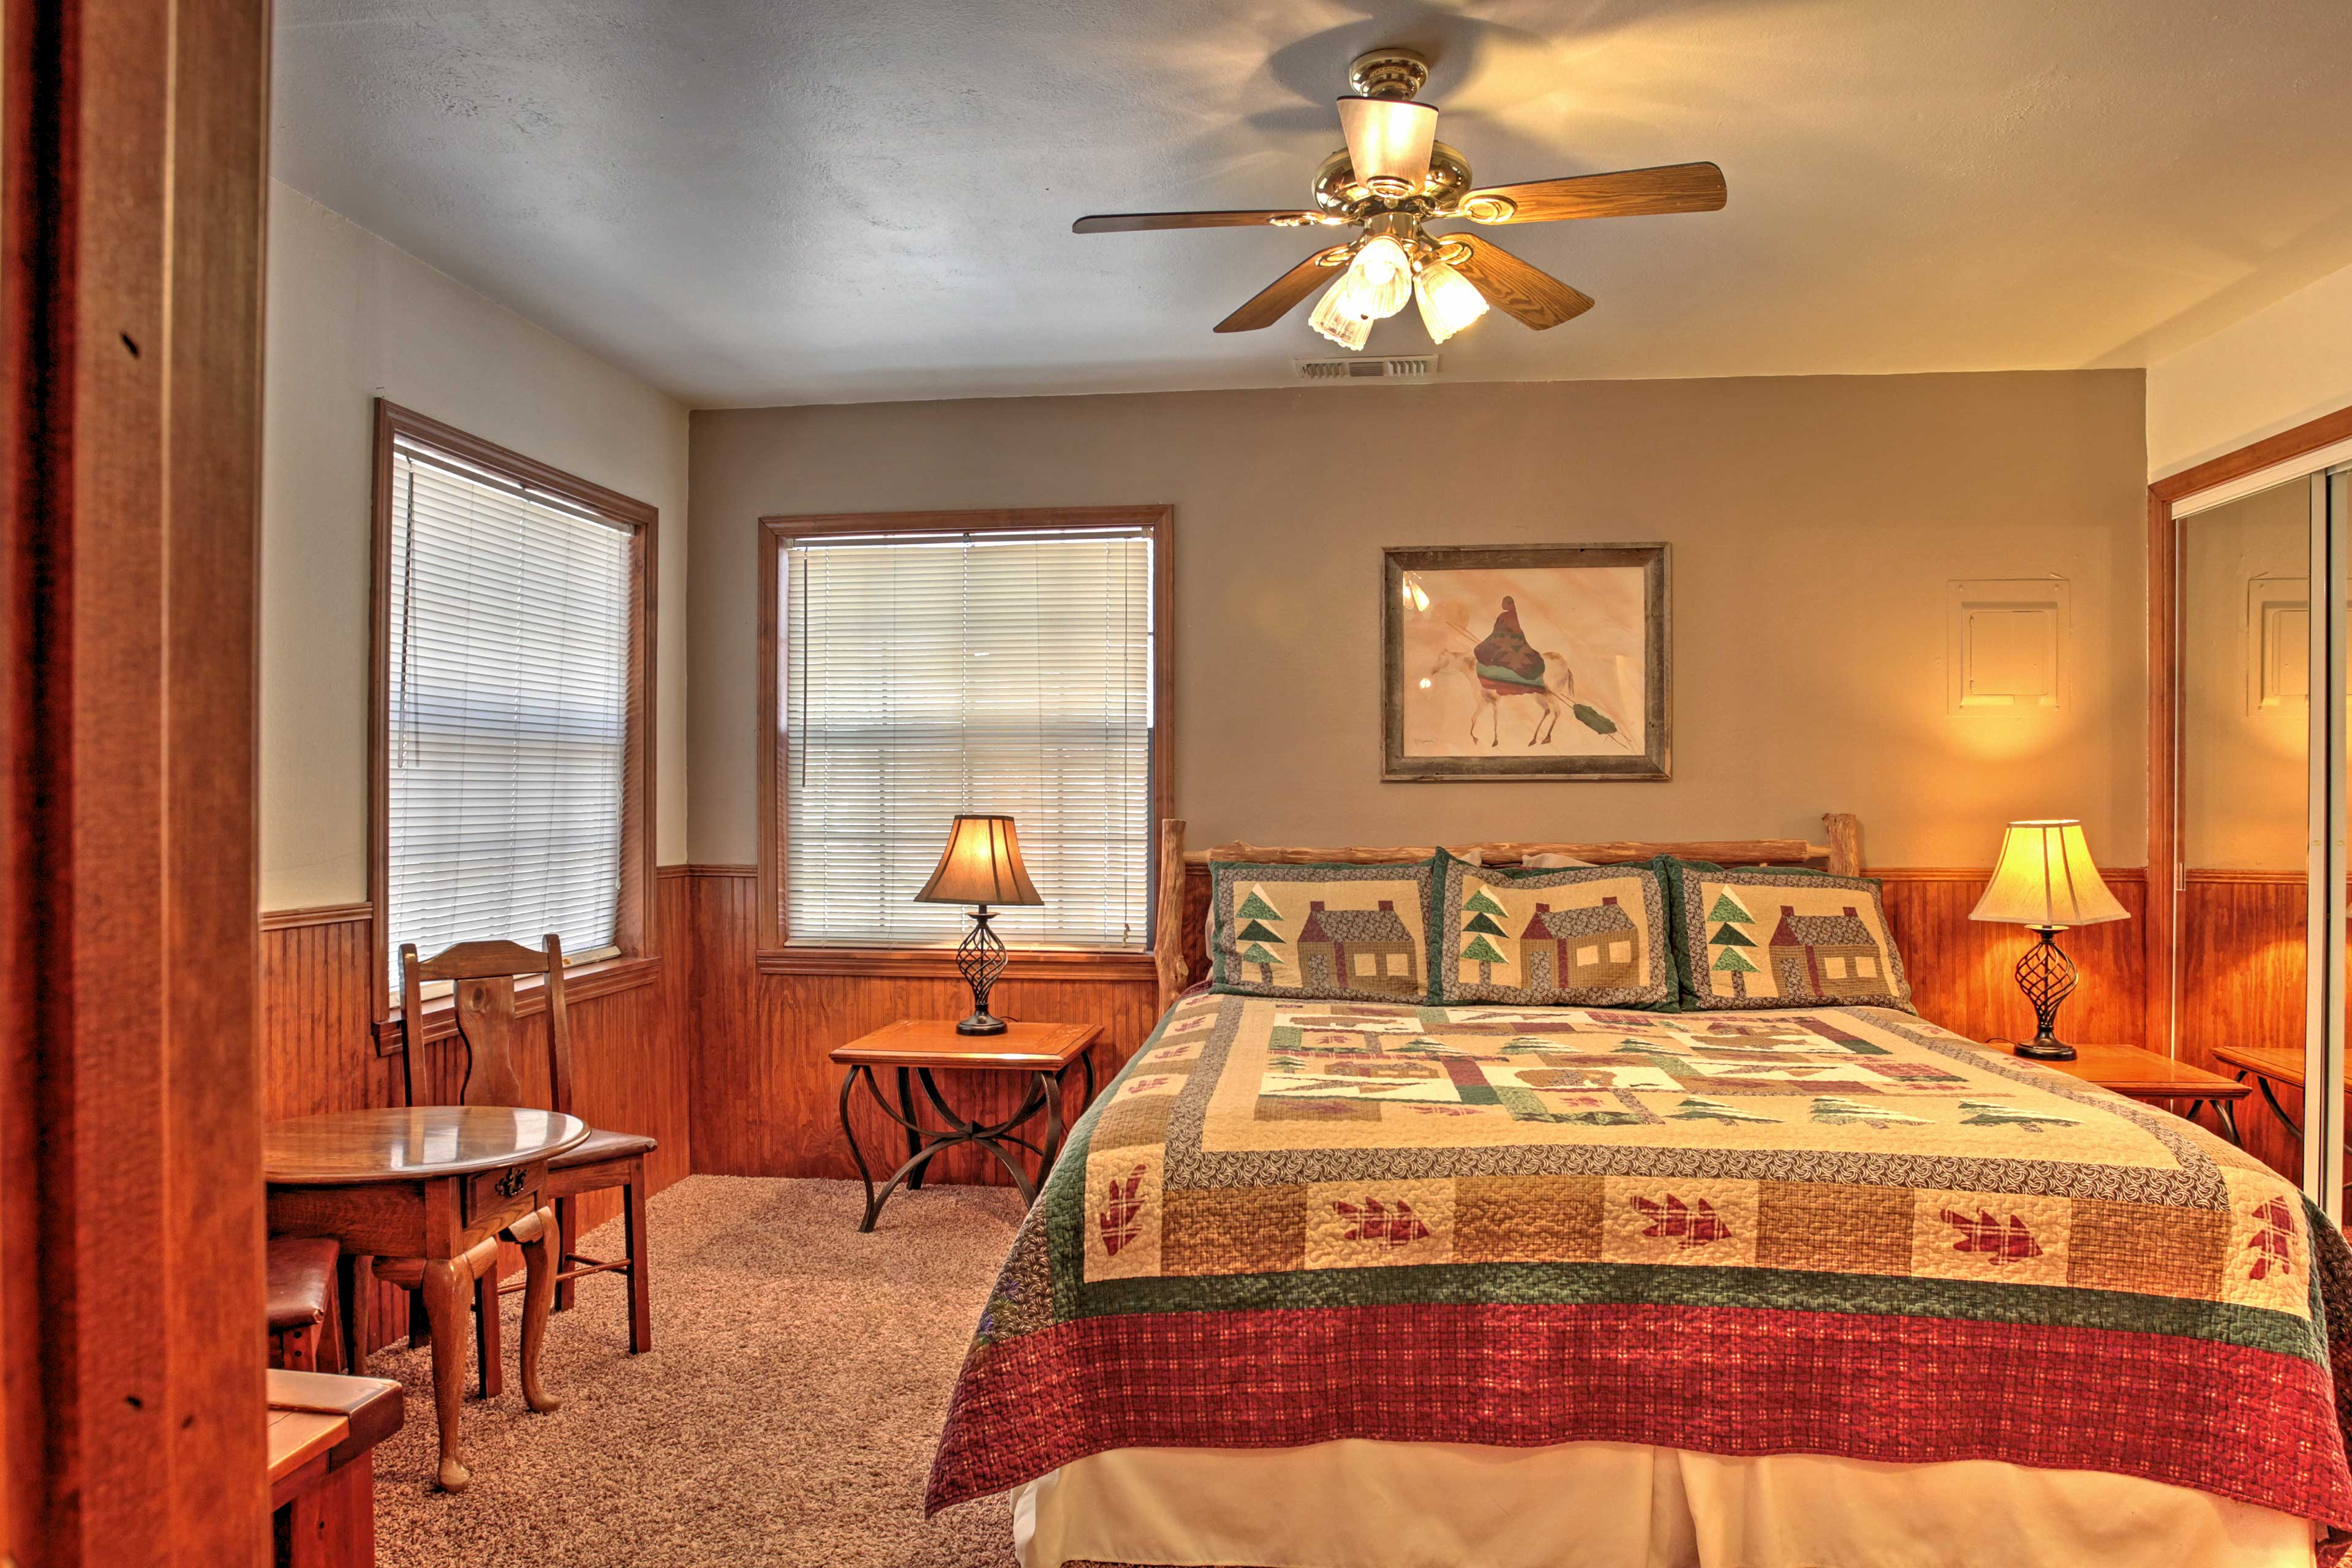 Turn on the ceiling fan for a cool breeze as you sleep the night away.